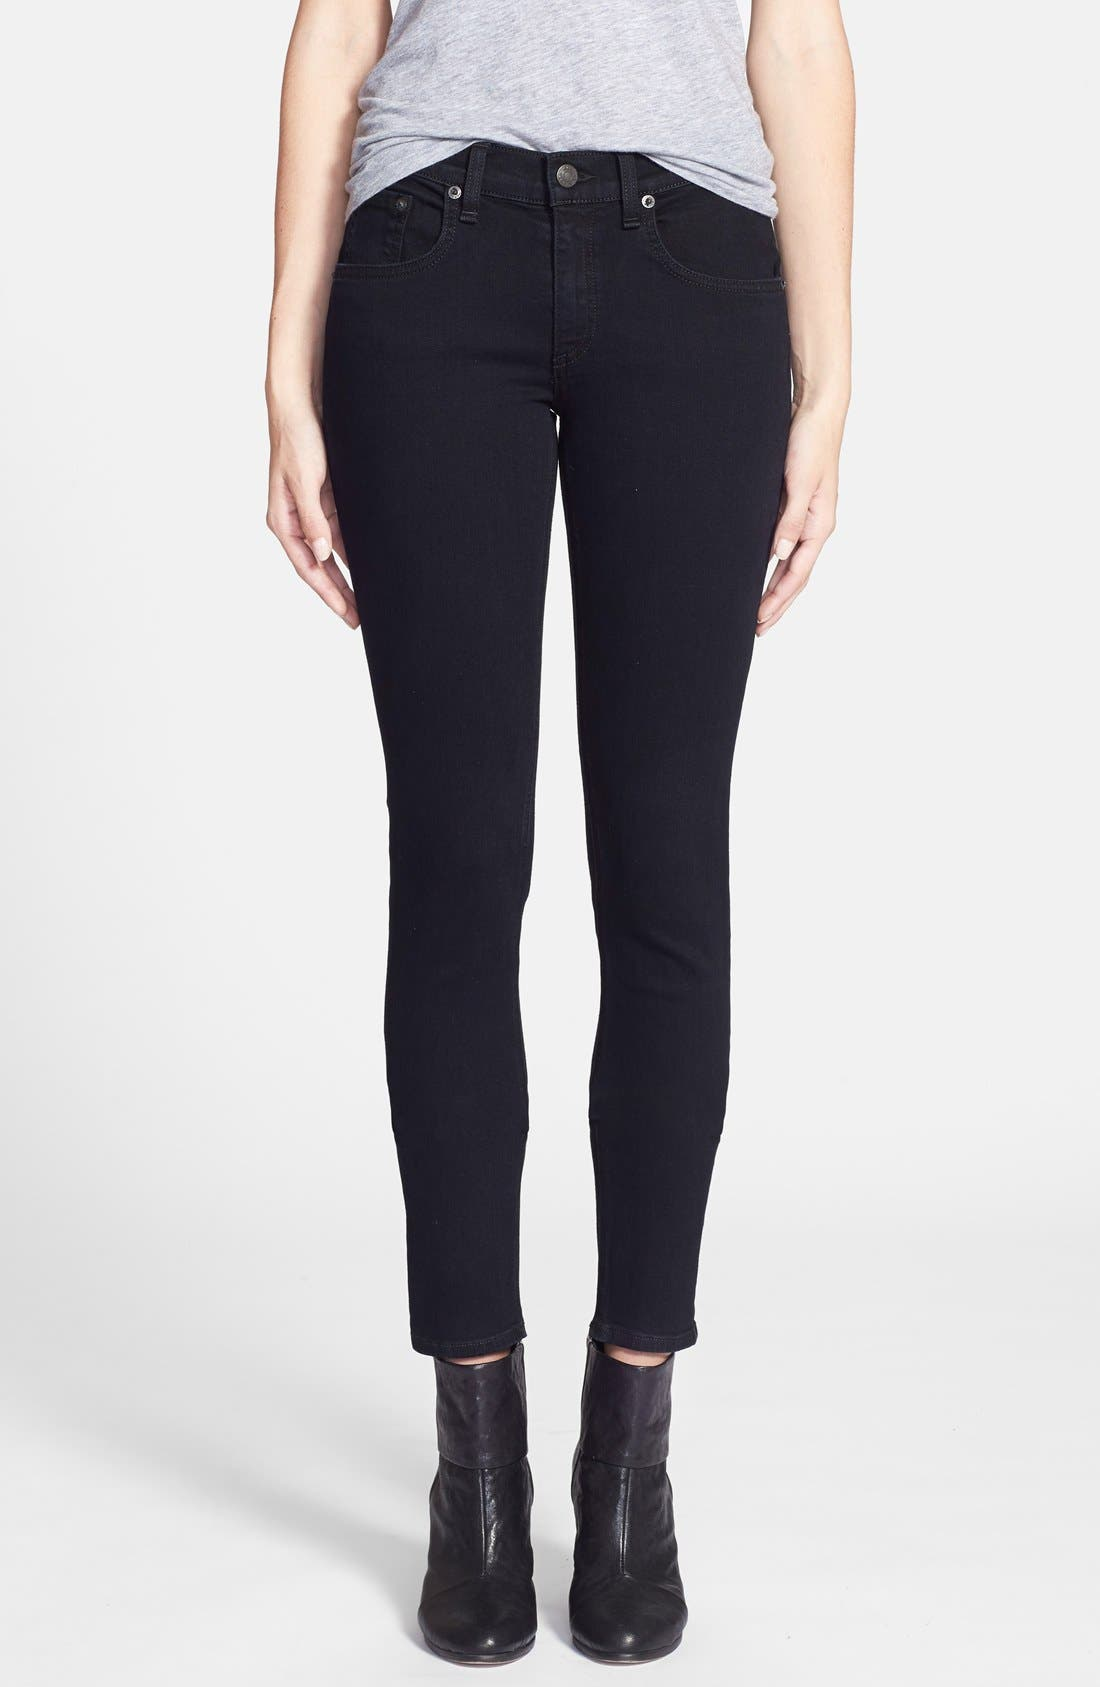 Main Image - rag & bone/JEAN 'The Skinny' Stretch Jeans (Coal)